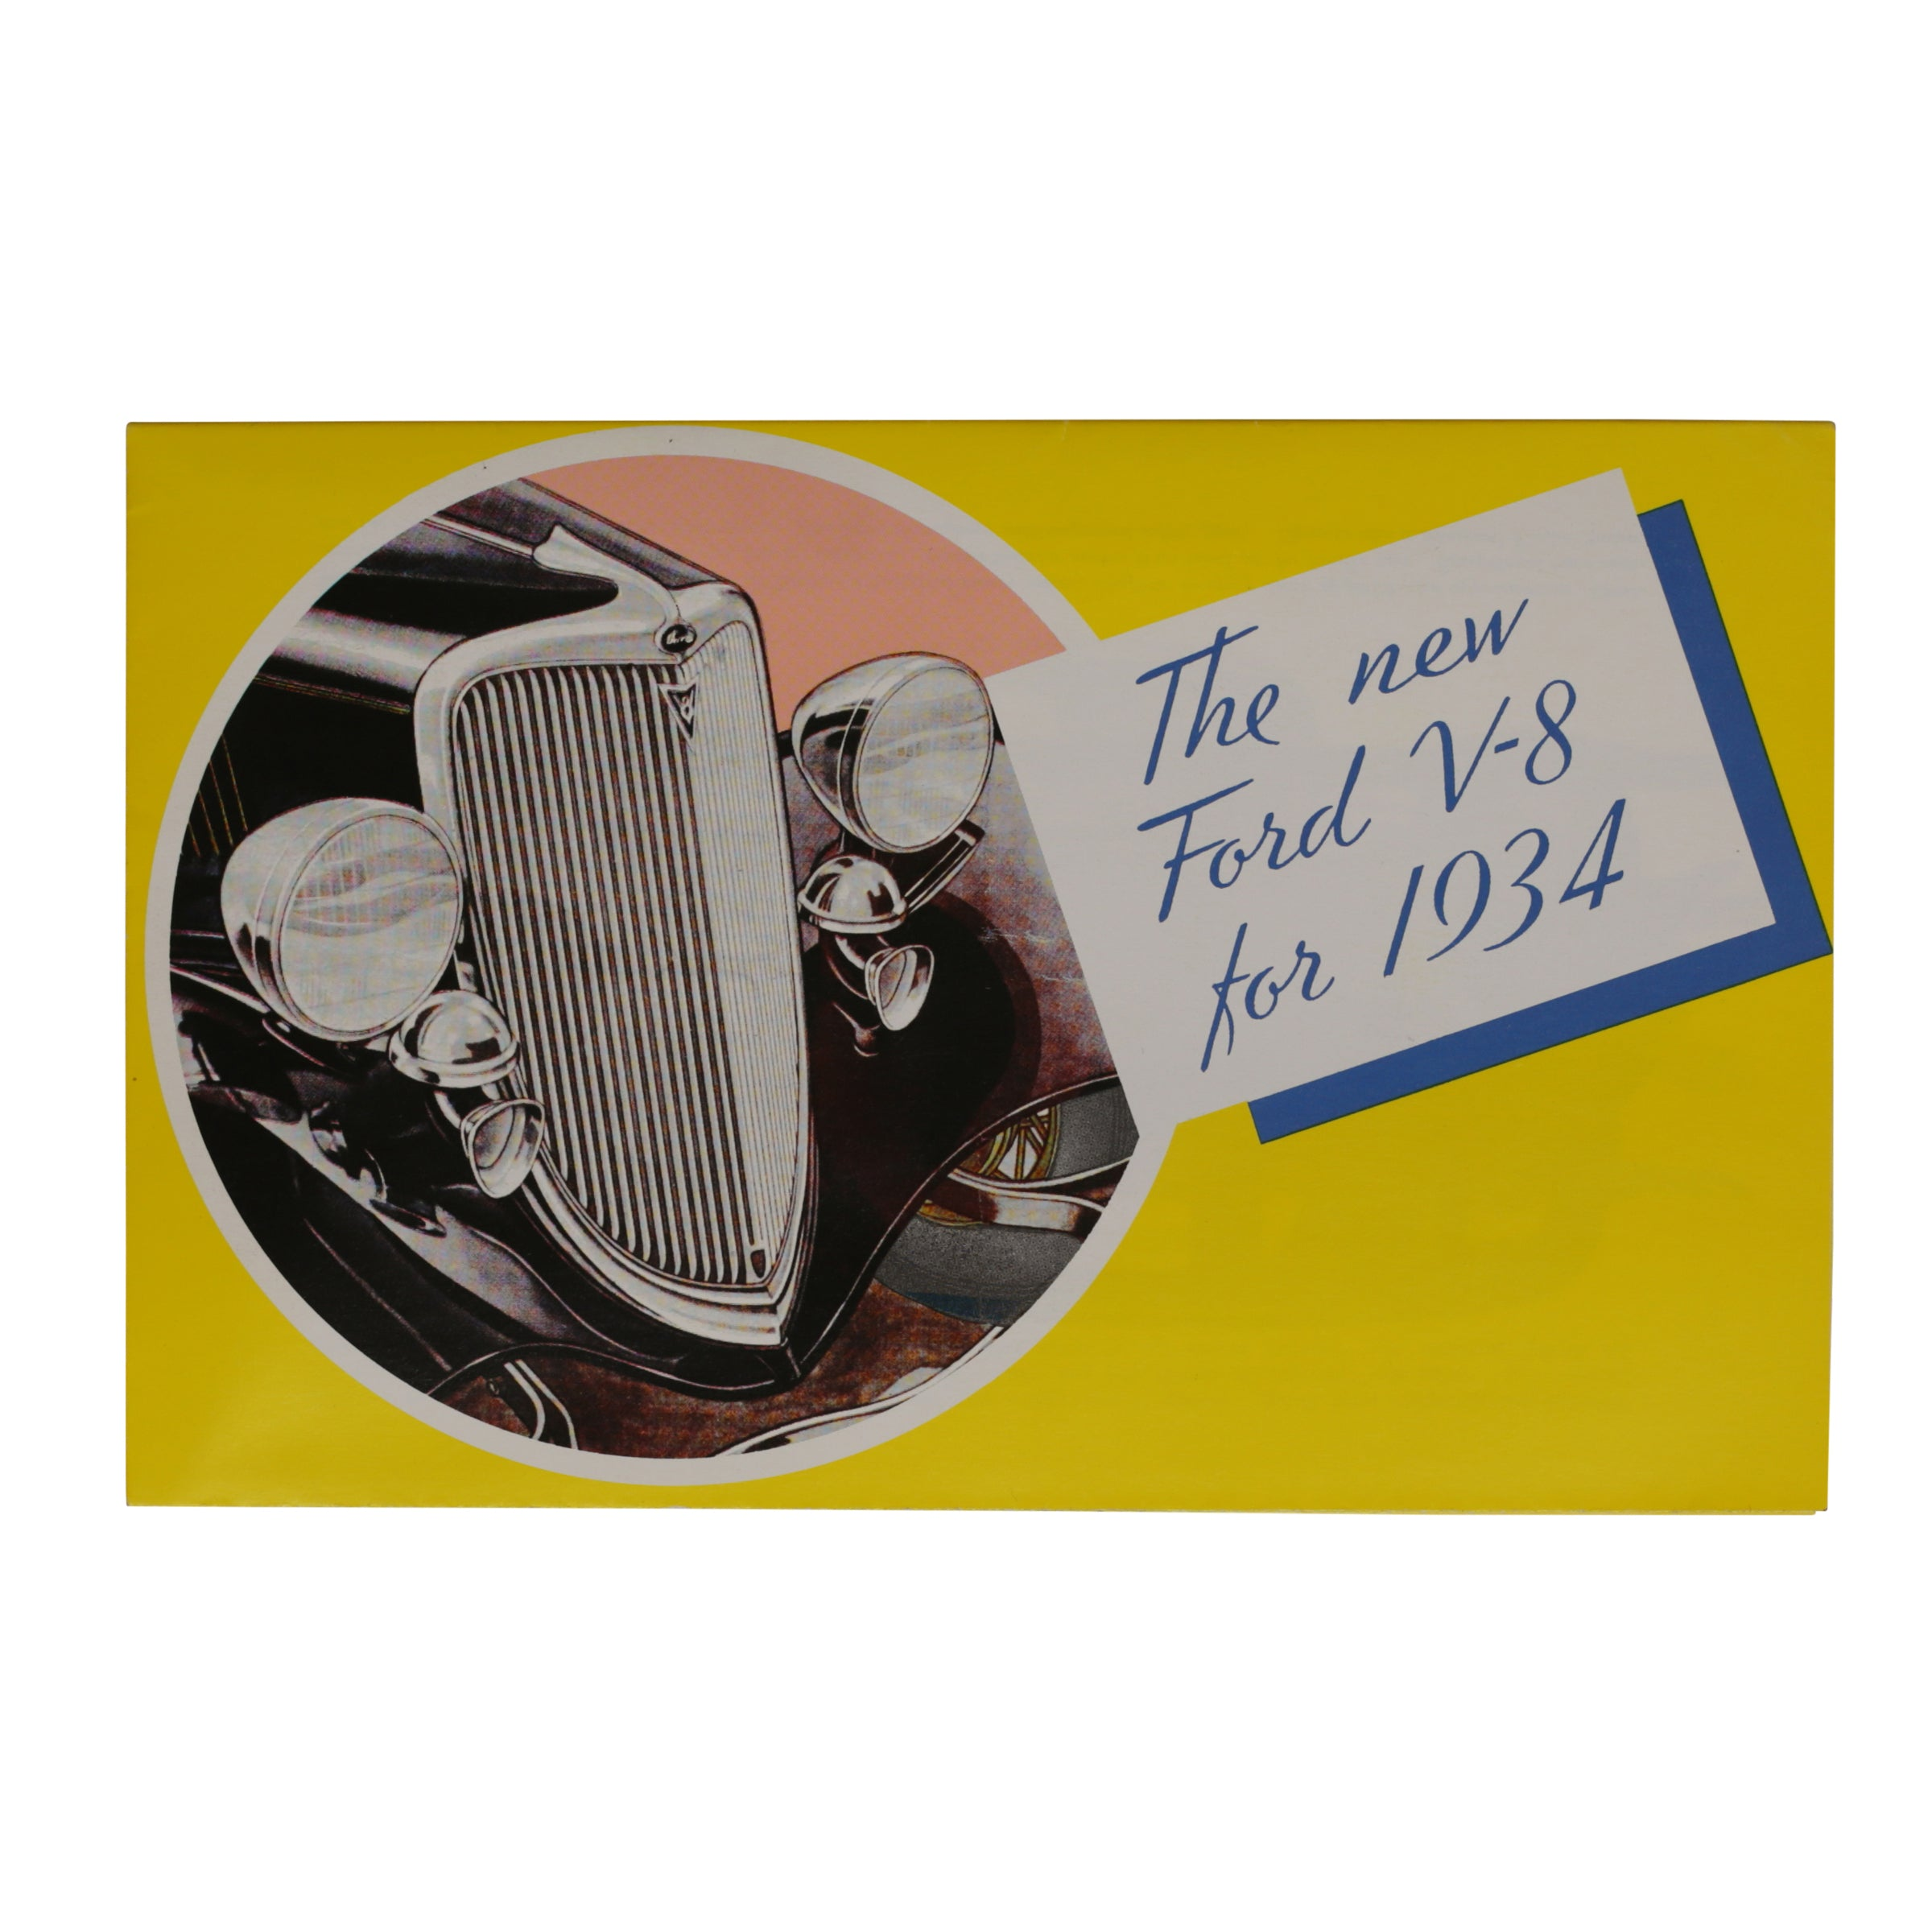 "Sales Brochure ""New for V-8"" • 1934 Ford"